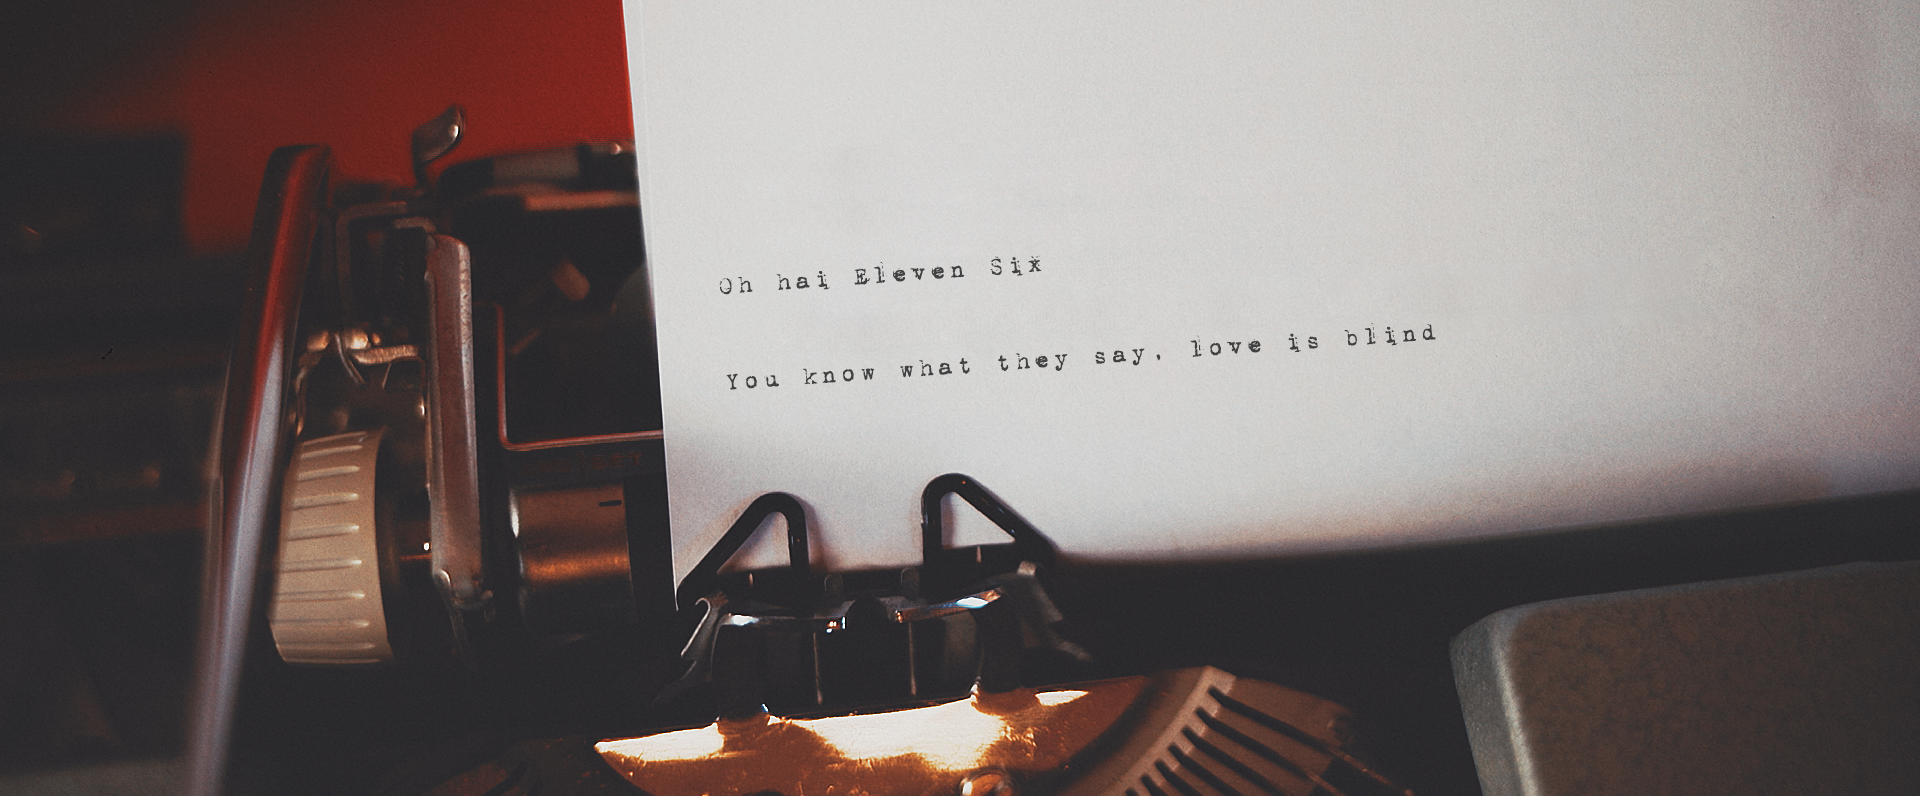 Contact Eleven Six Wedding Films Glasgow - Header Typewriter